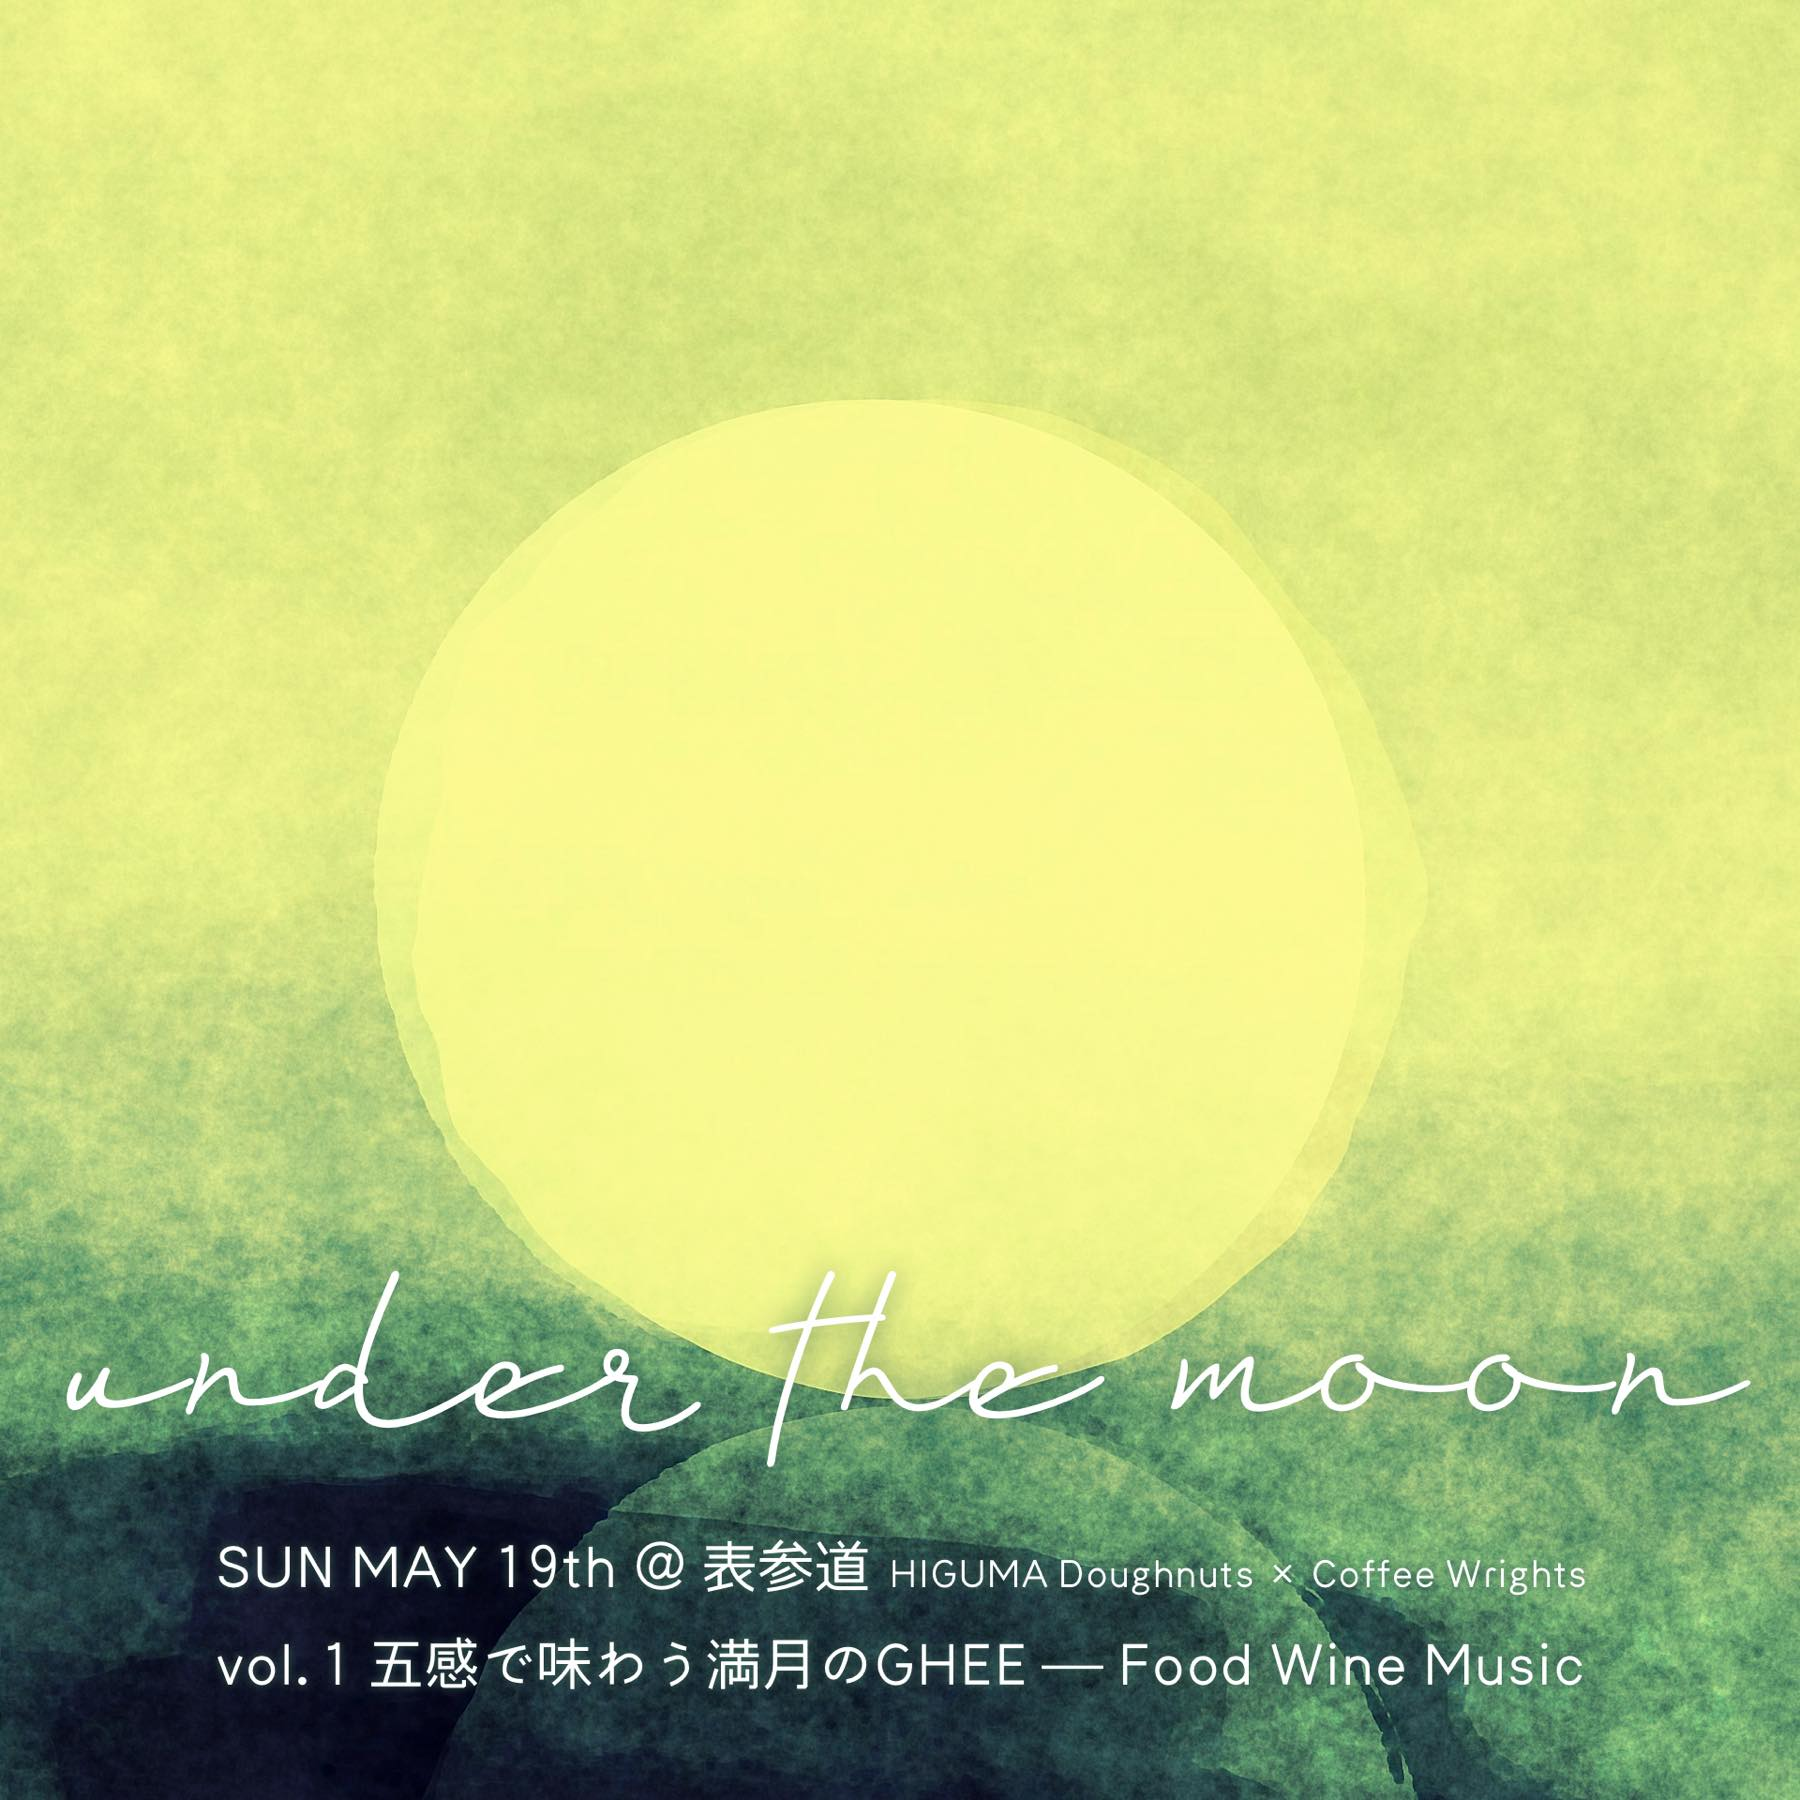 under the moon Vol.1 -五感で味わう満月のGHEE-